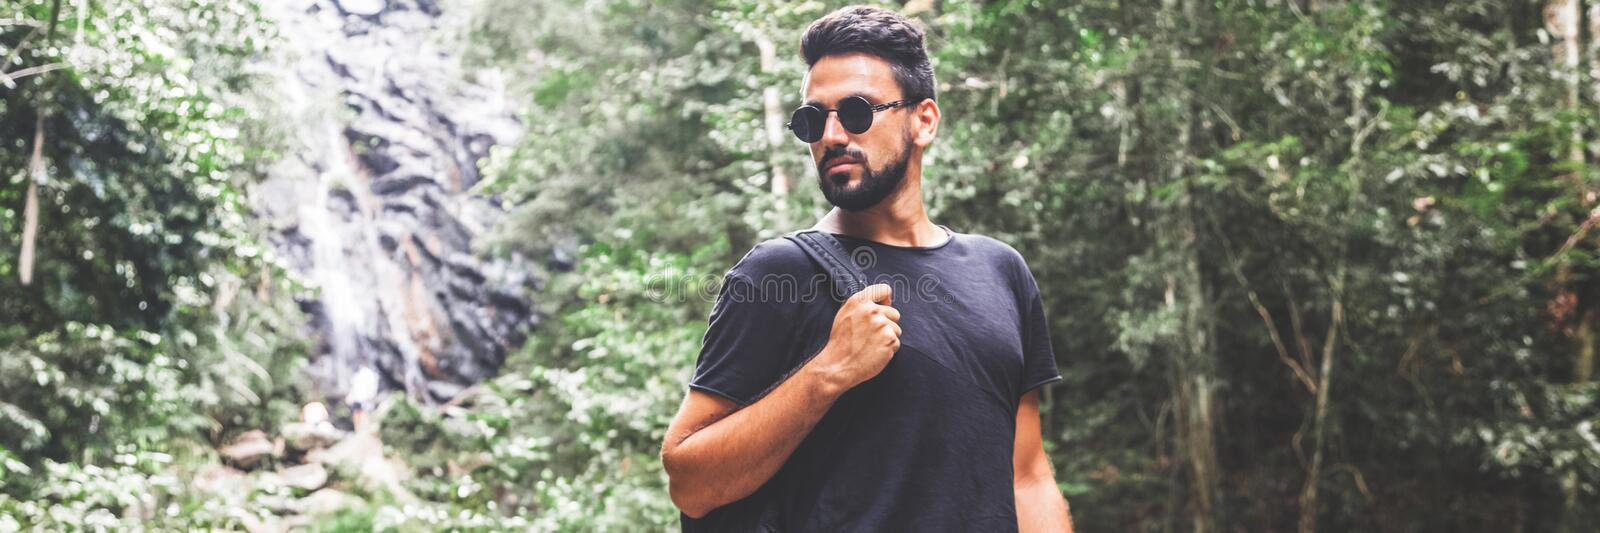 Handsome young stylish man in black t-shirt and sunglasses is engaged in trekking in the green jungle royalty free stock photo